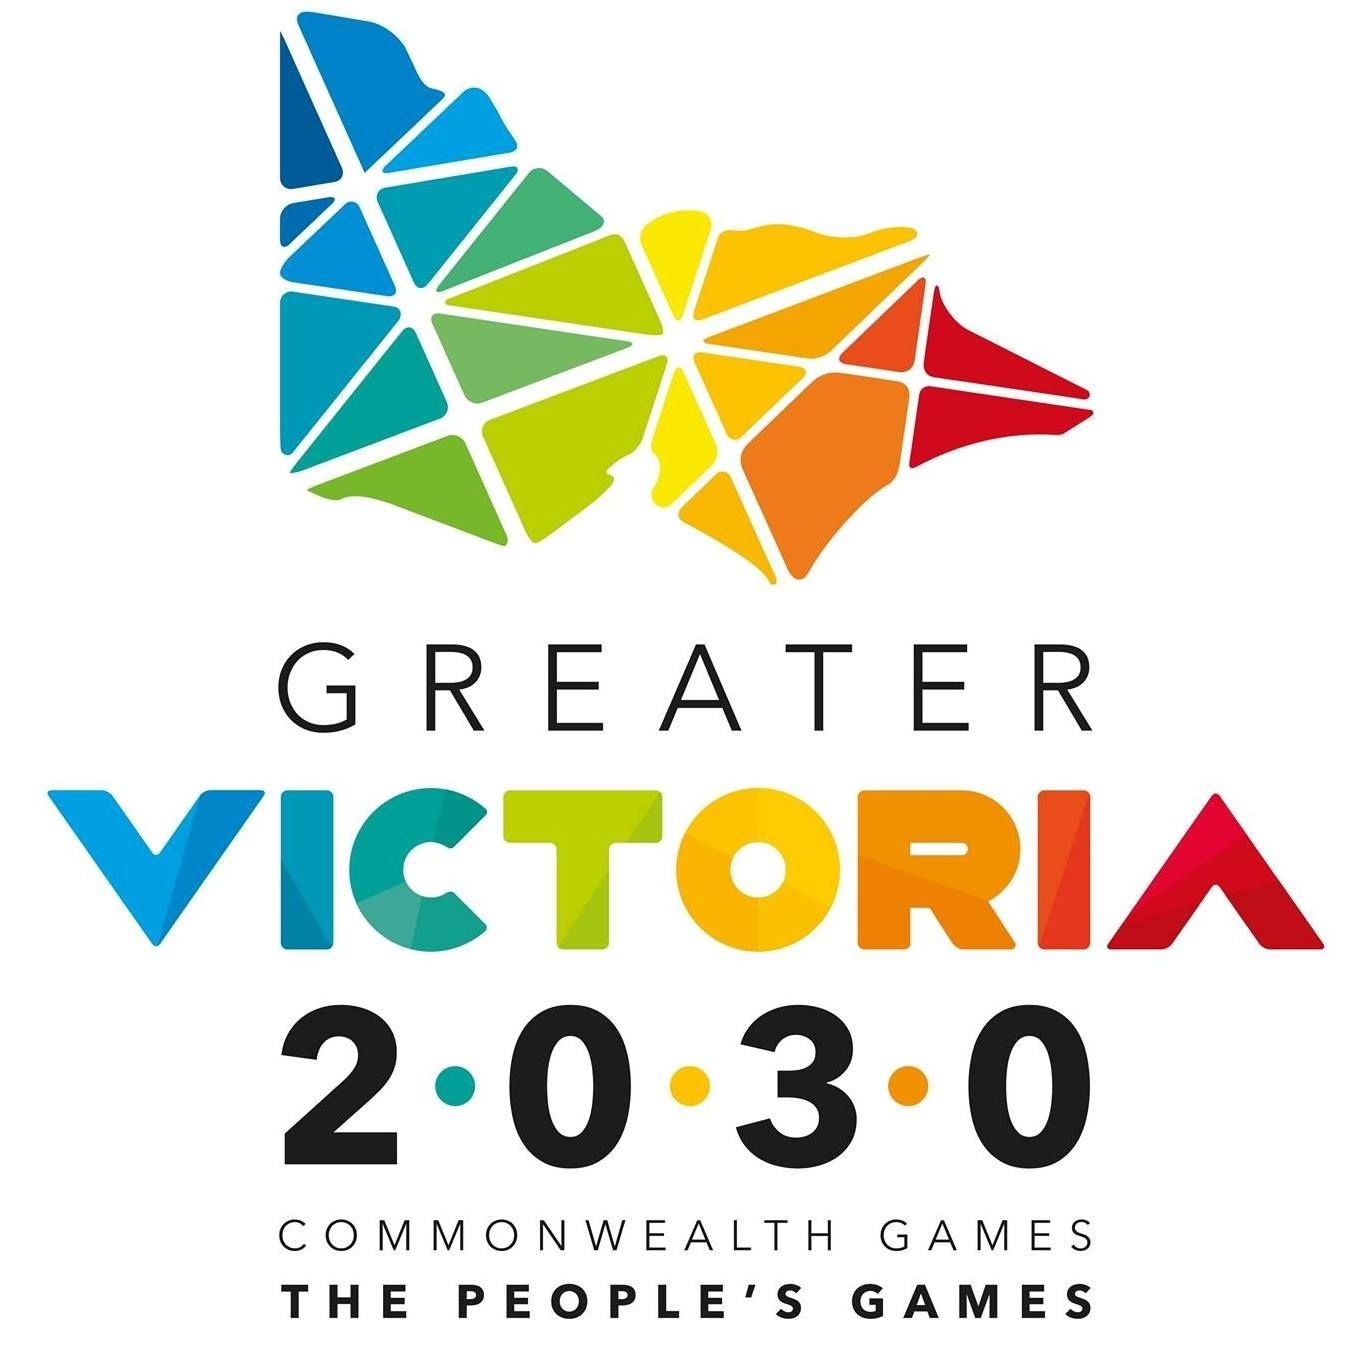 Were bidding for the 2030 greater victoria commonwealth games the greater victoria bid concept will be announced thursday at the iconic victoria park lake in central shepparton attended by greater shepparton city malvernweather Gallery